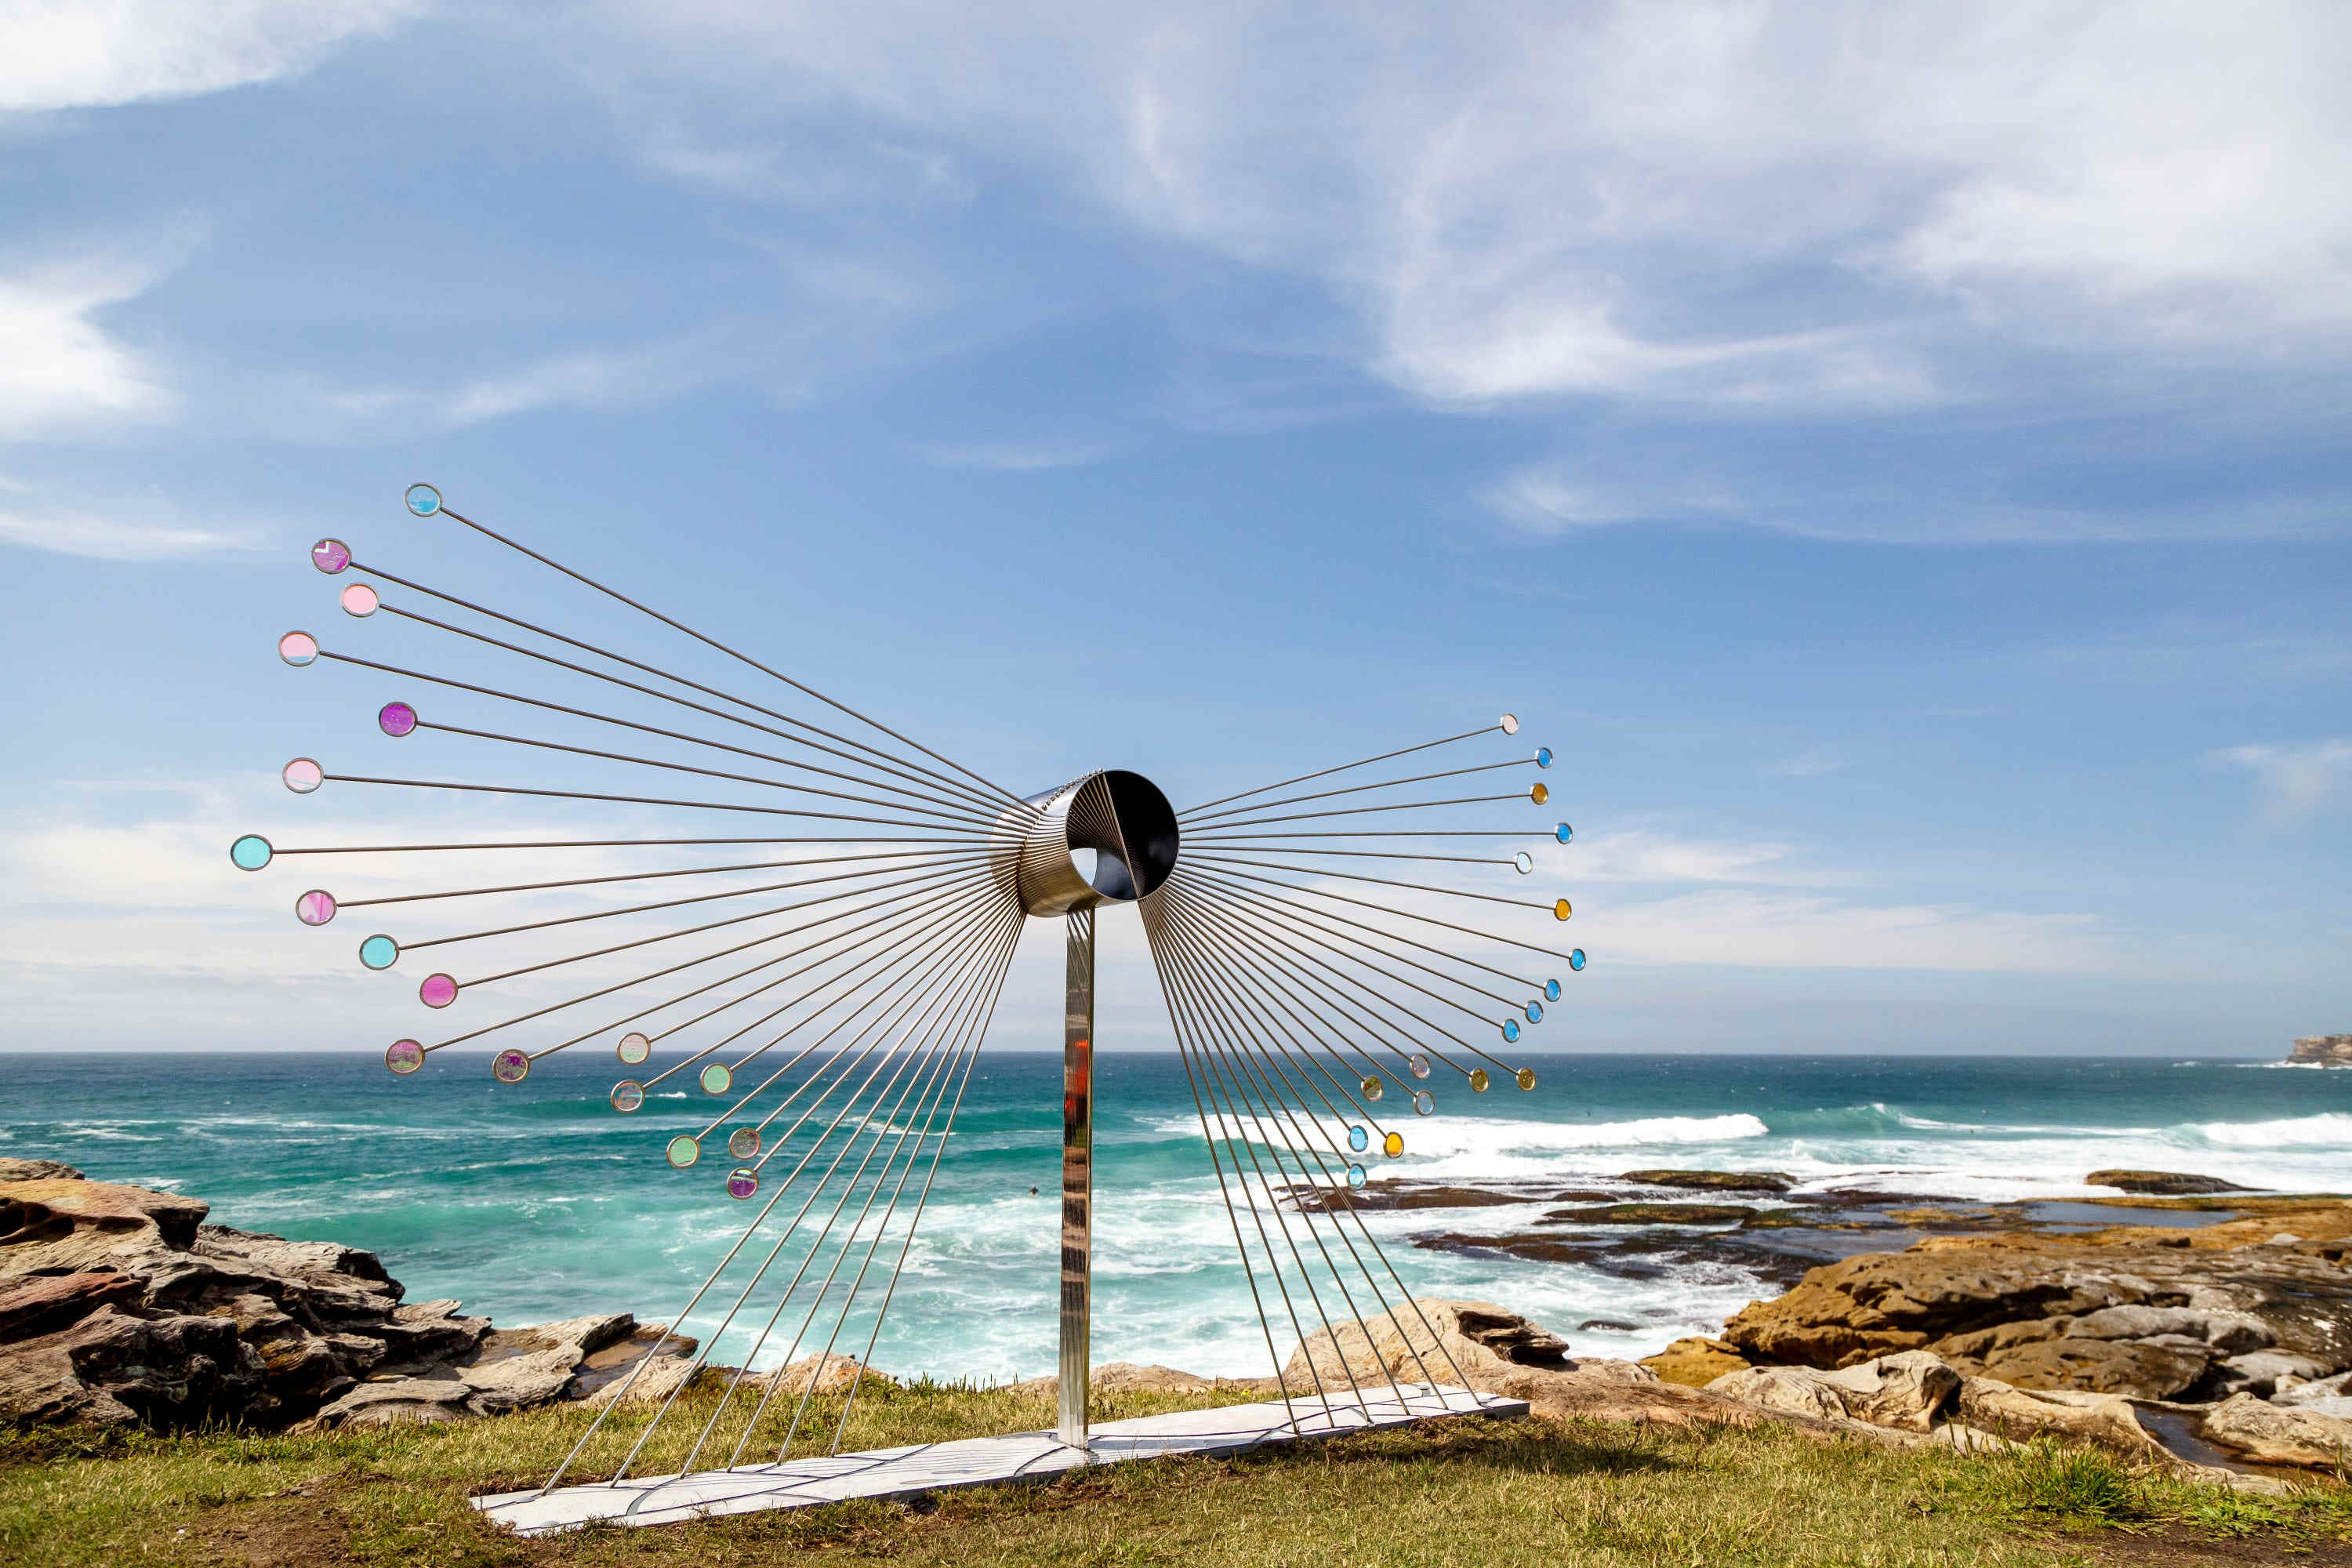 Flight by Rhiannon West is one of the works at Bondi.